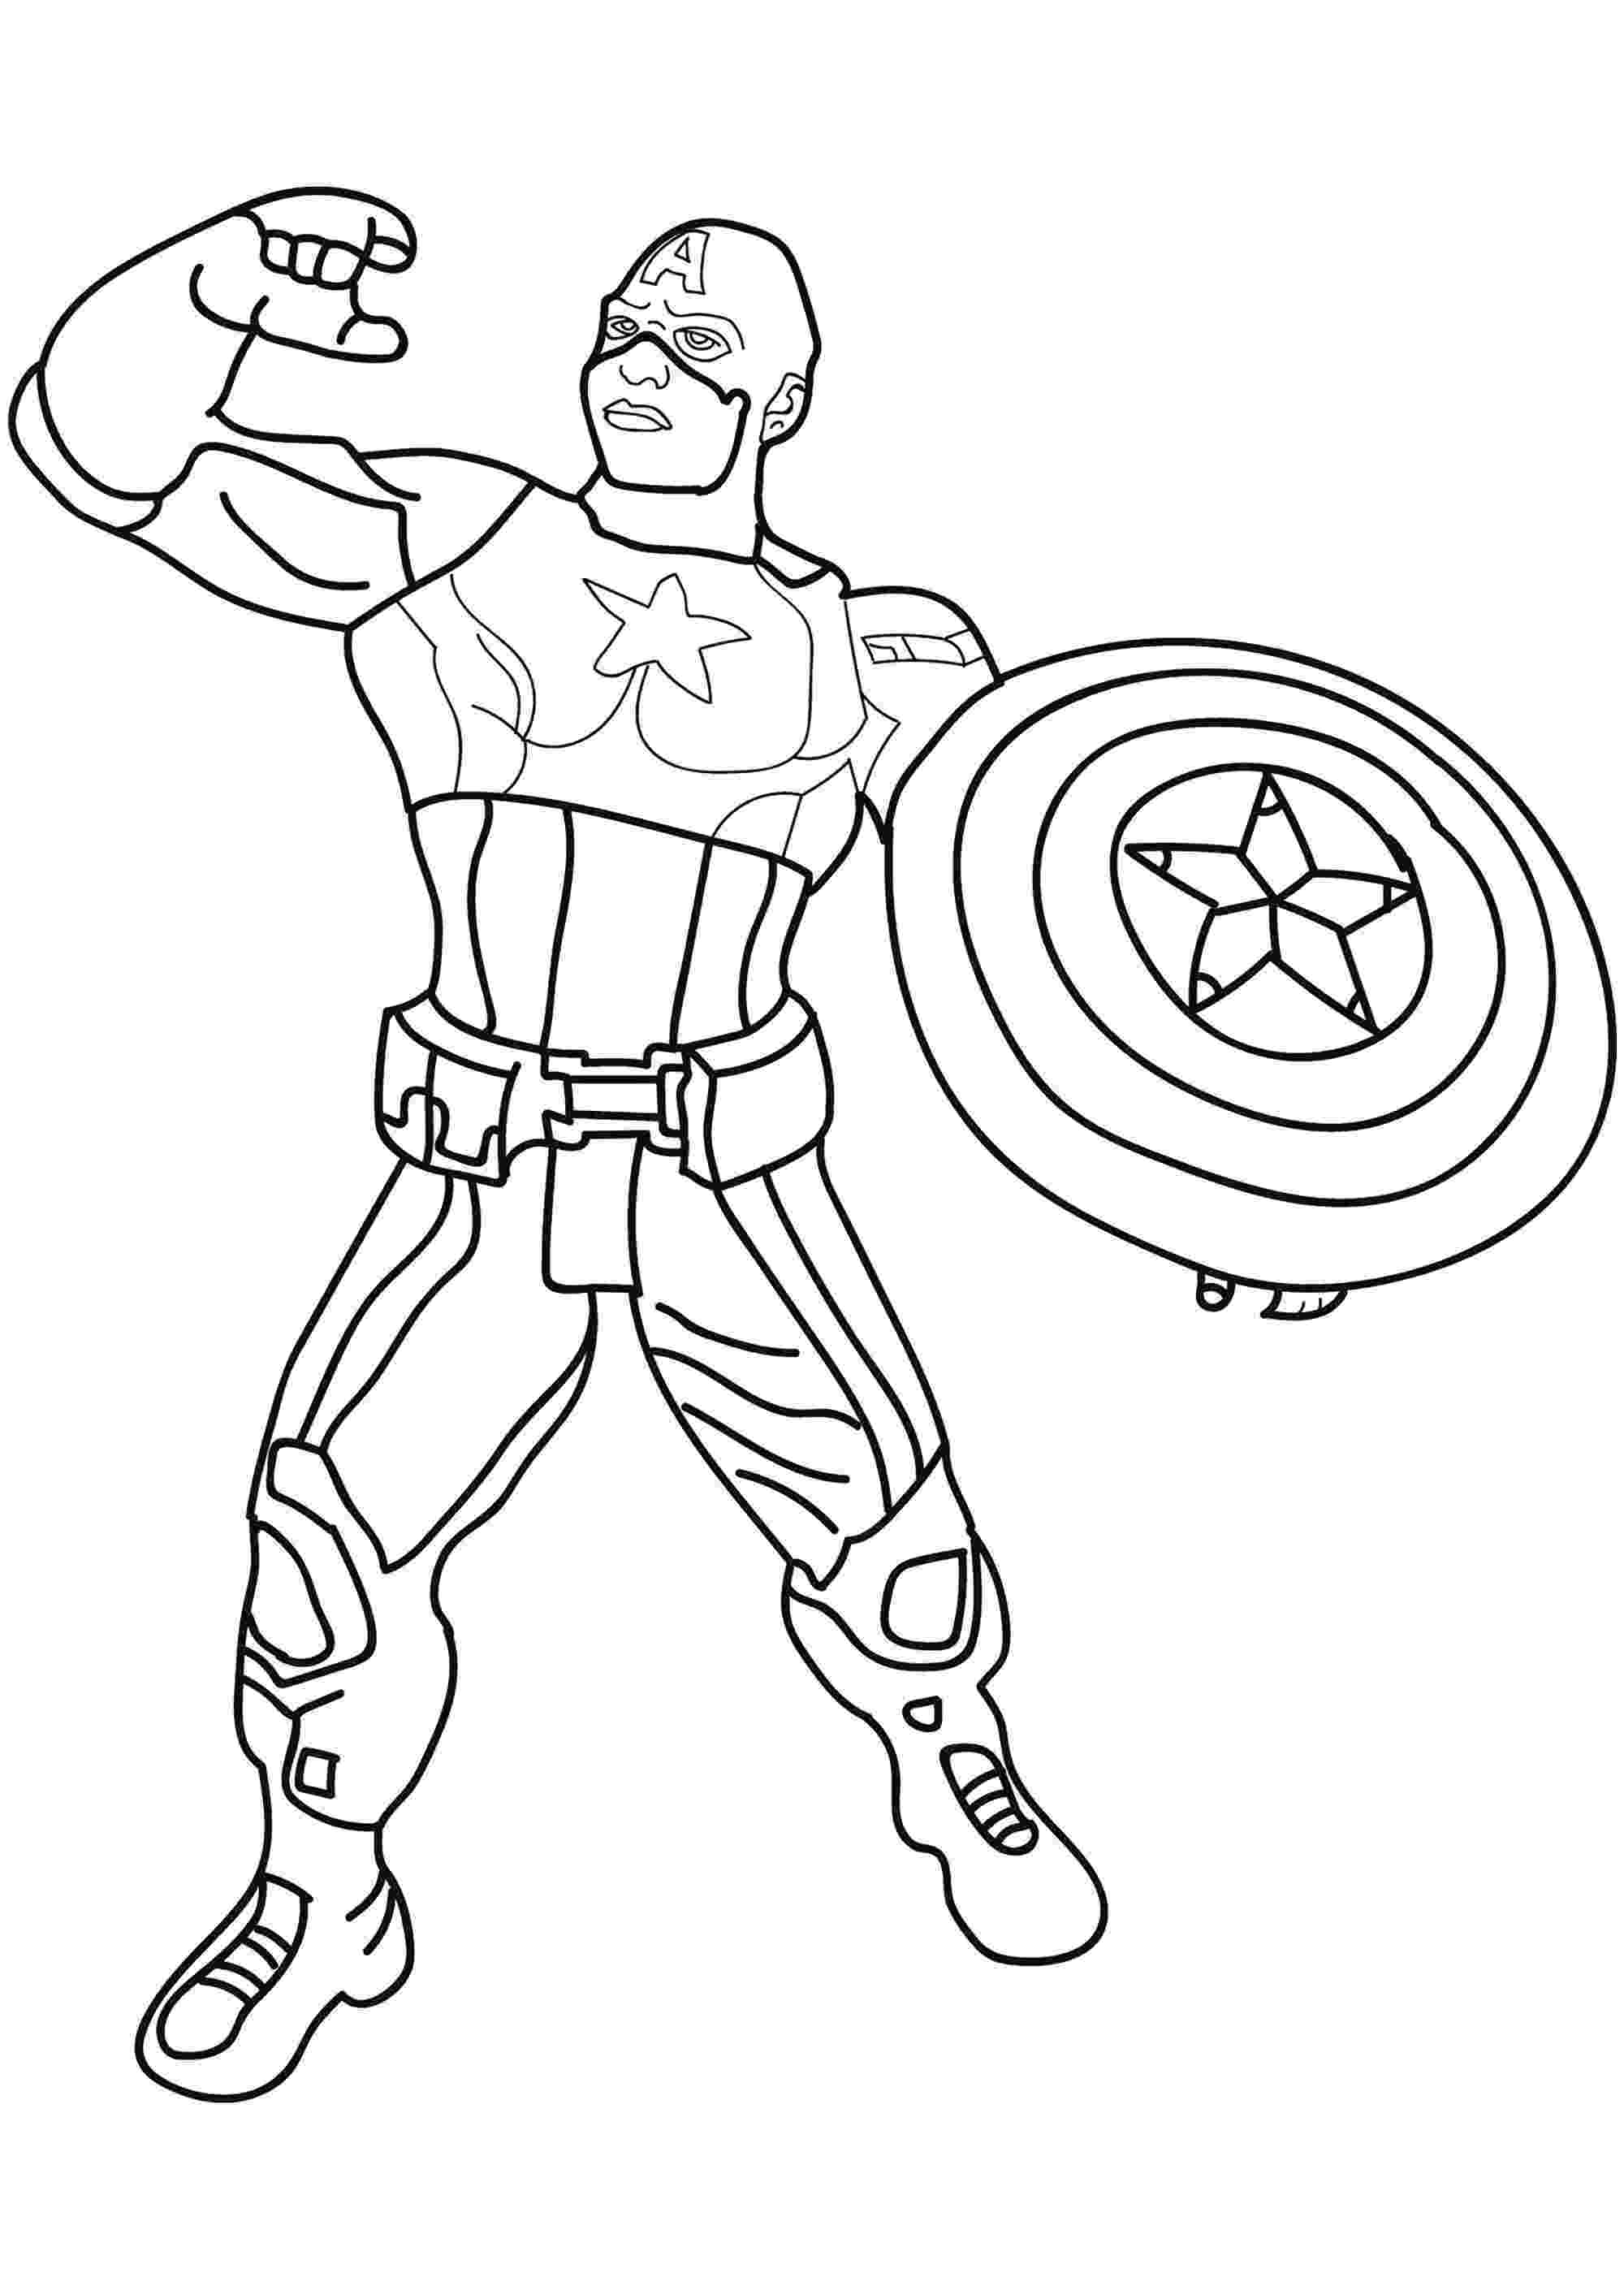 free printable captain america coloring pages captain america captain america kids coloring pages printable coloring pages america free captain